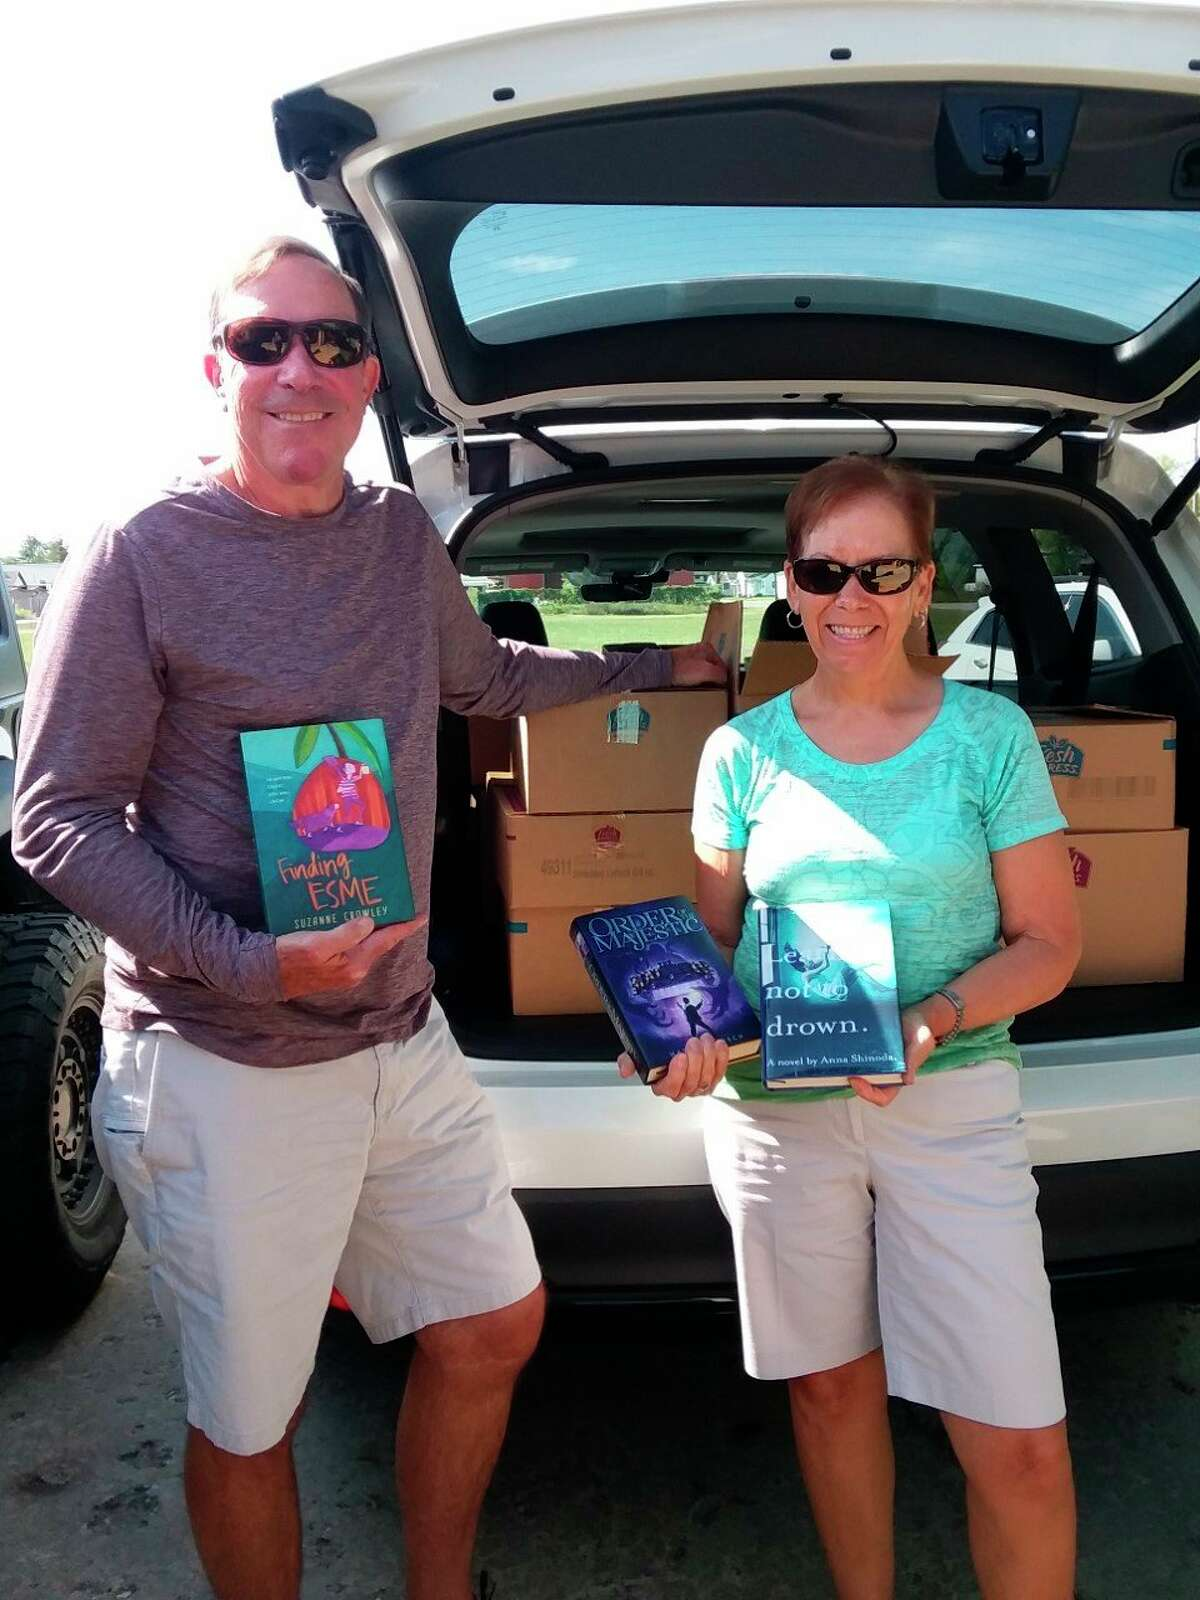 Ron and Dawn Long of Traverse City deliver book donations to the Bread of Life Pantry in Baldwin every three weeks. (Submitted photo)